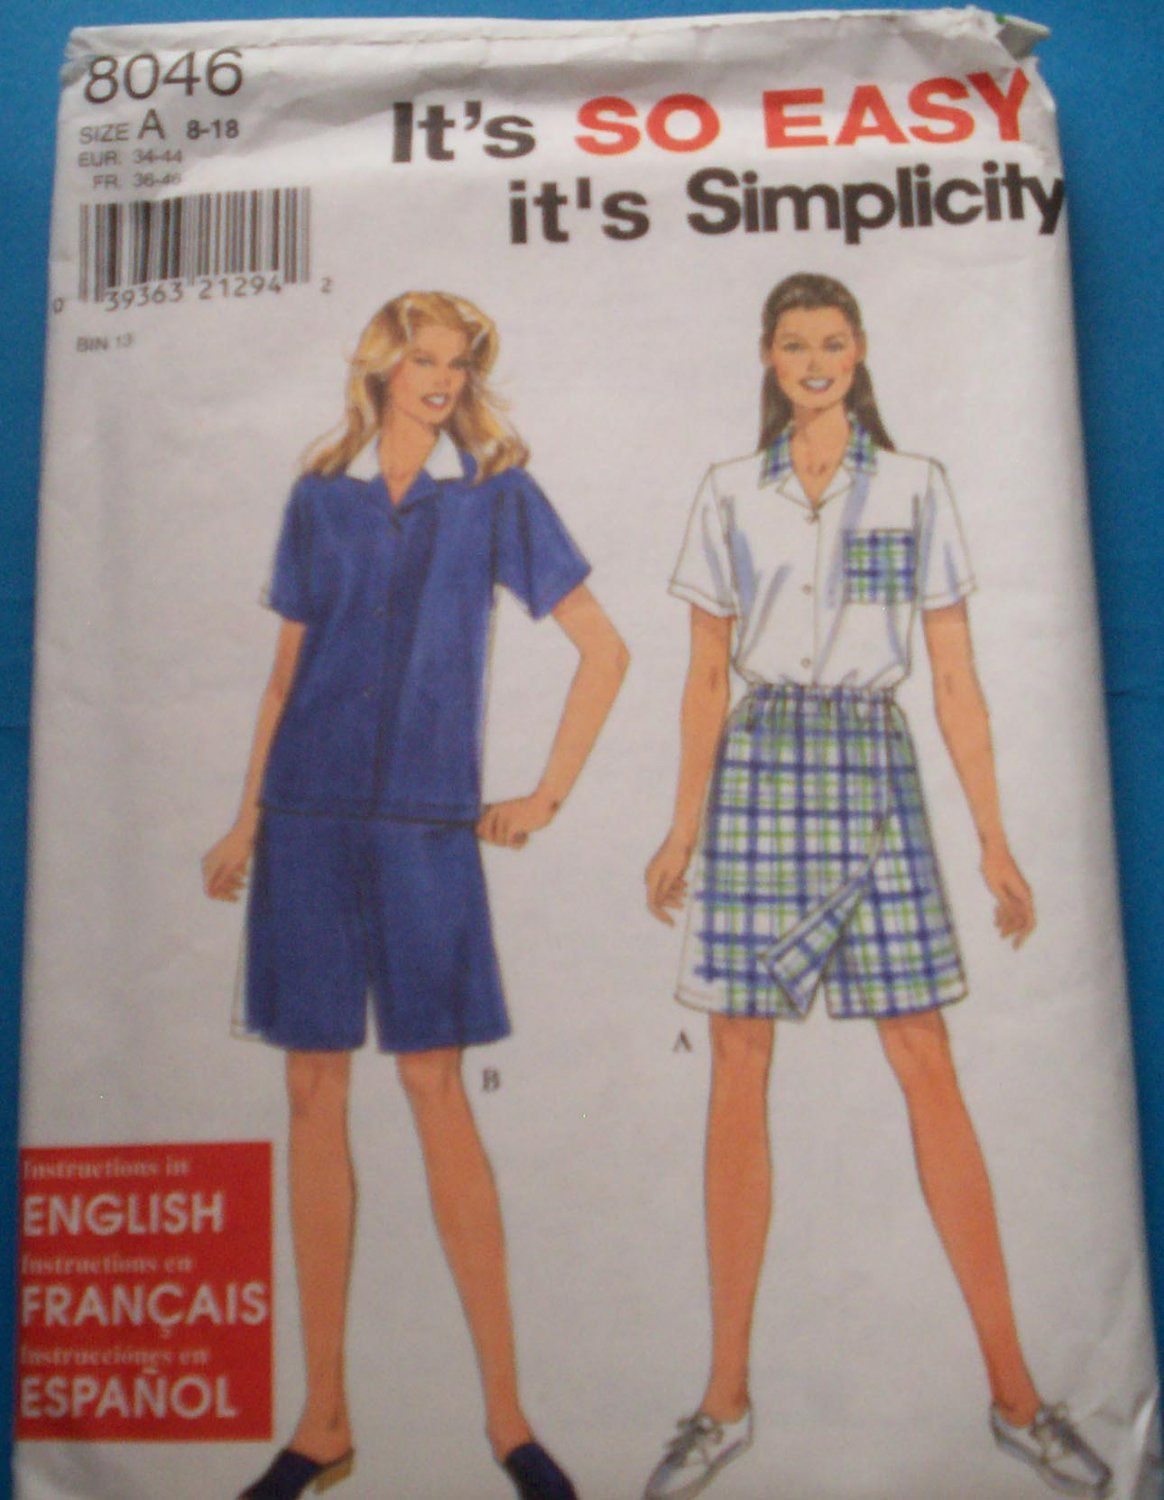 Simplicity pattern #8046, size A, 8-18, misses blouse and short